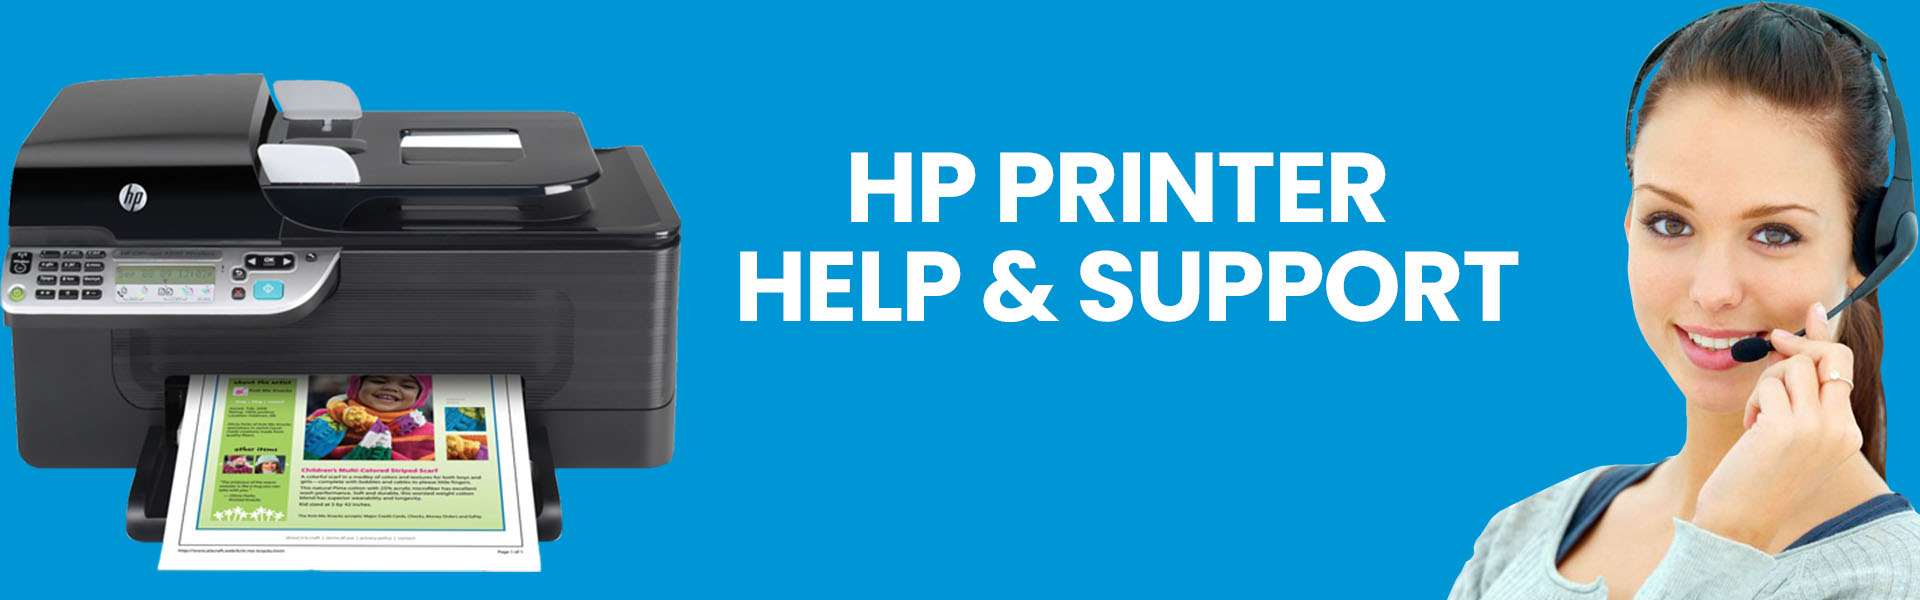 hp printer Help & Support